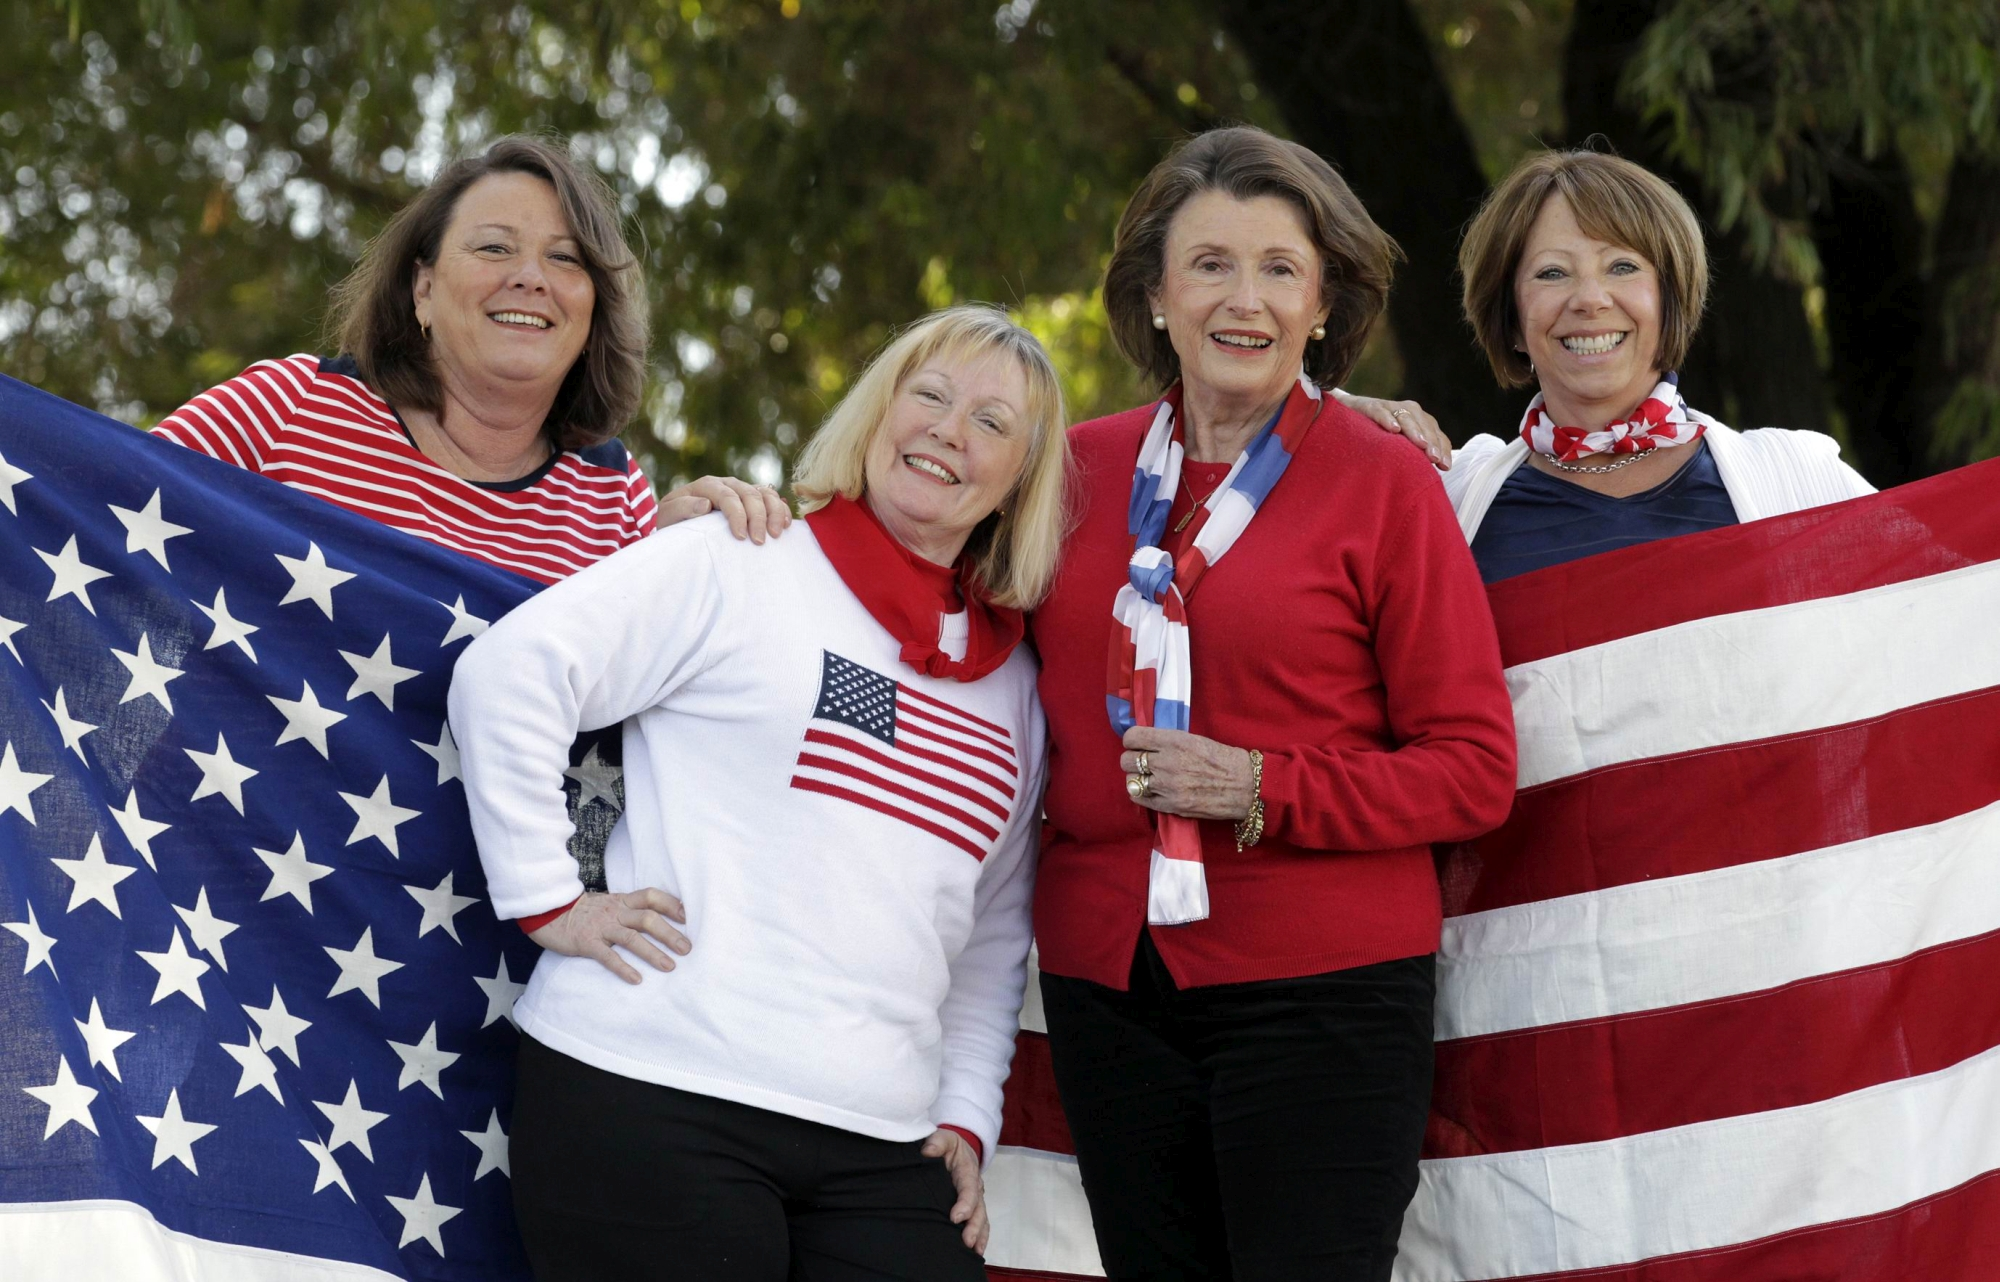 American Women's Club of Perth members Denise Mosley, Gail Campbell, Rhonda Metka and Cheryl Rosenthal fly the flag to celebrate the American Independence Day. Picture: Martin Kennealey www.communitypix.com.au d404042